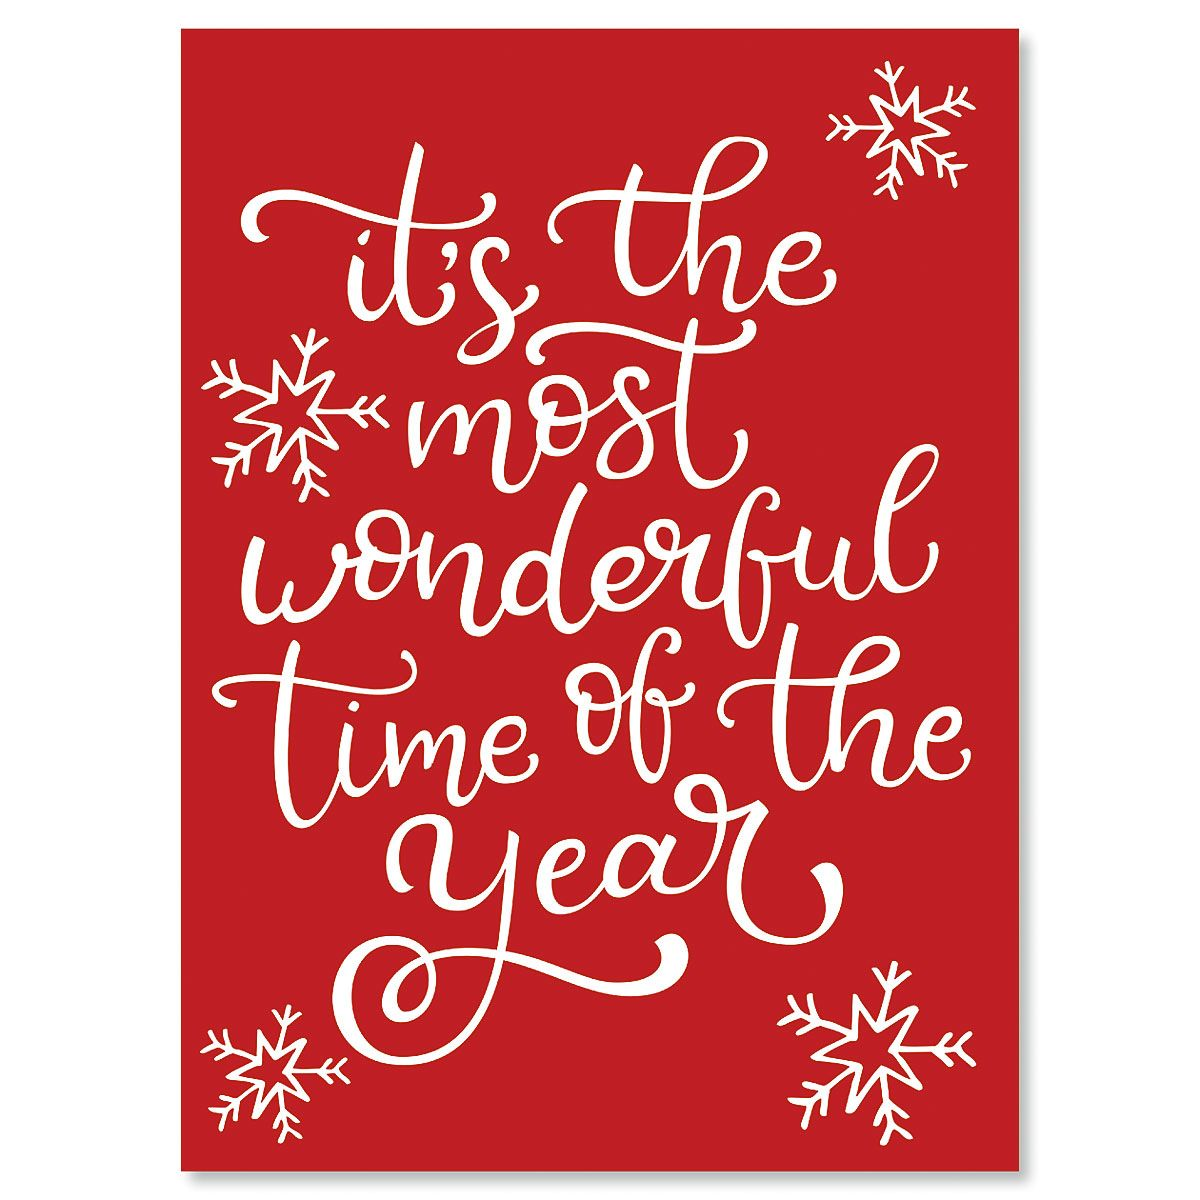 Most Wonderful Nonpersonalized Christmas Cards - Set of 72